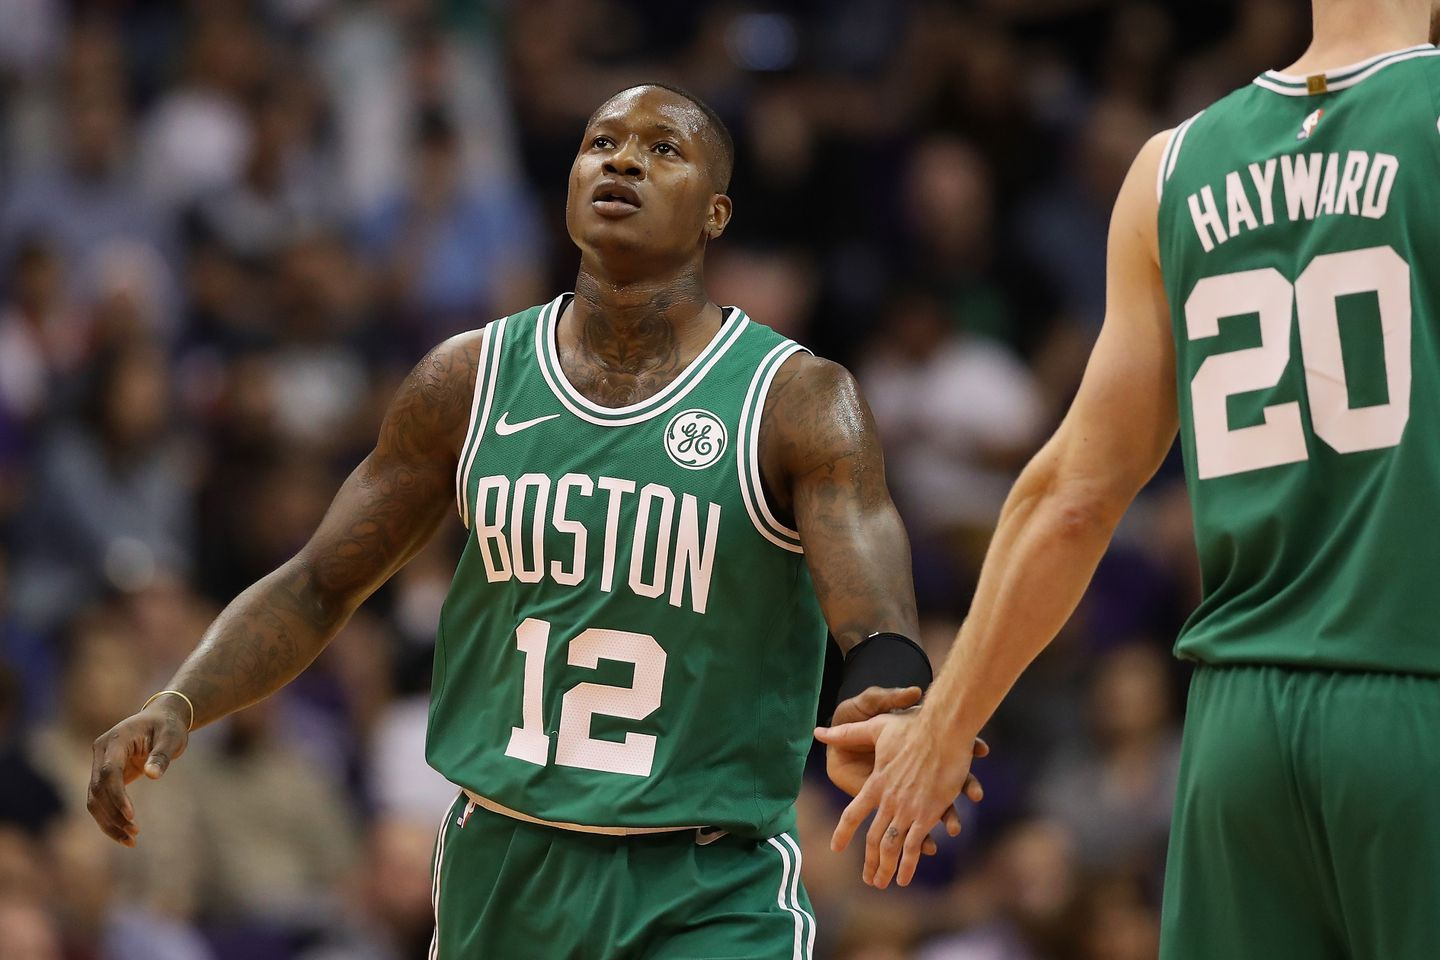 ee96d09786db No Kyrie Irving means good run for Terry Rozier - The Boston Globe